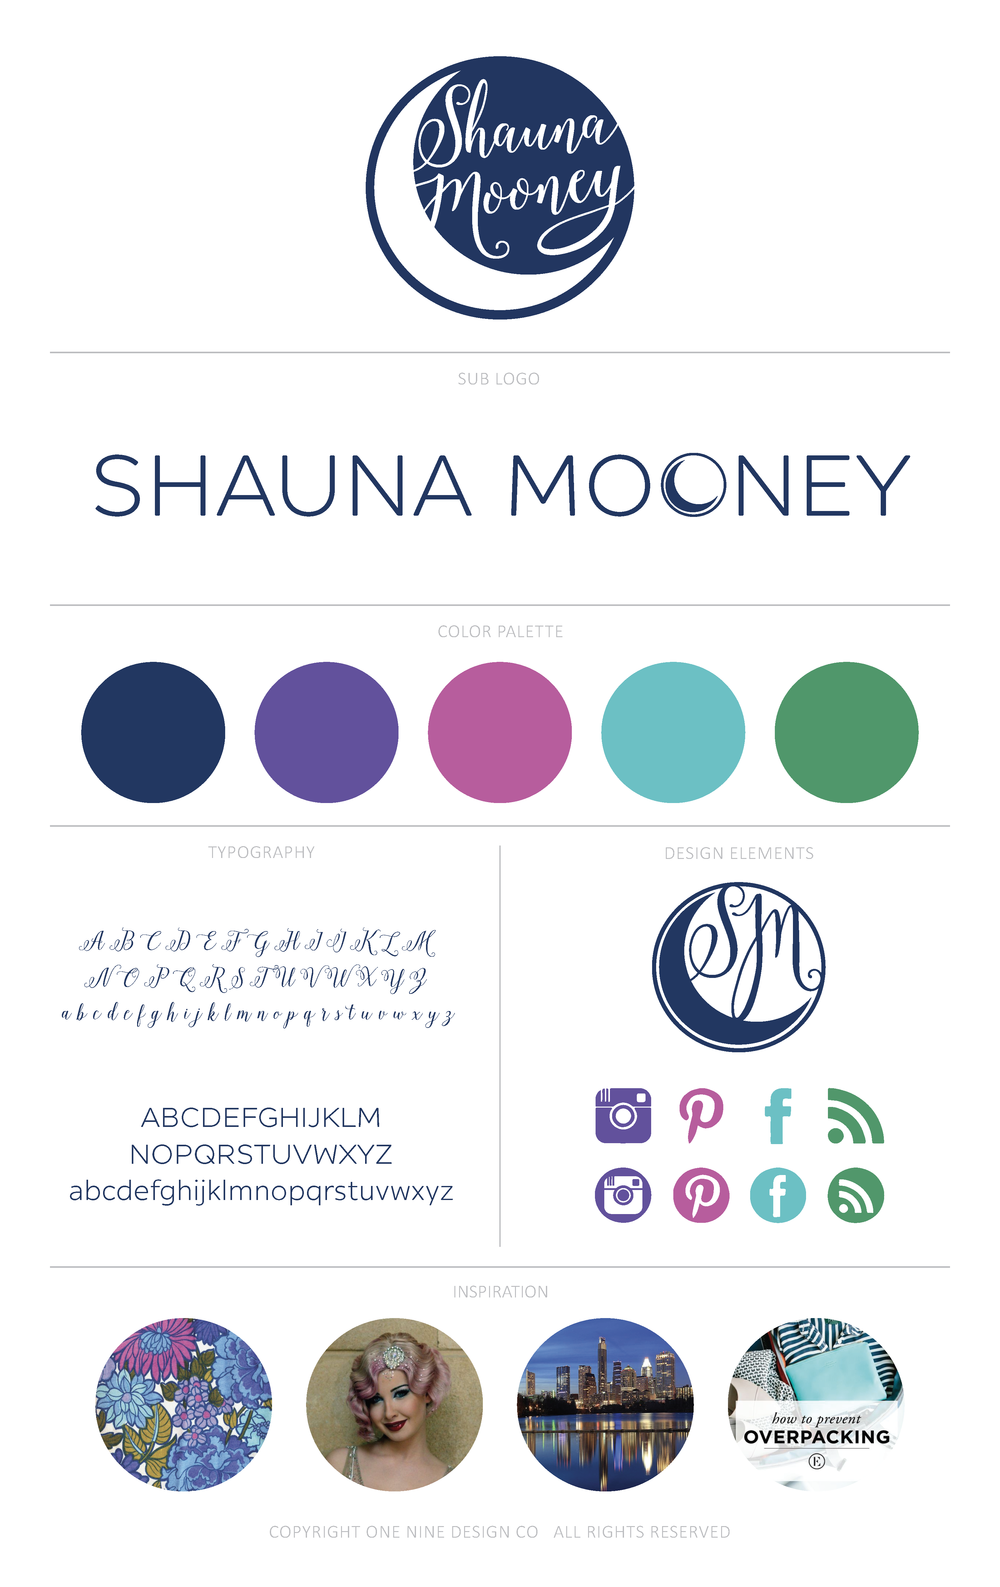 Shauna Mooney Brand | One Nine Design Co